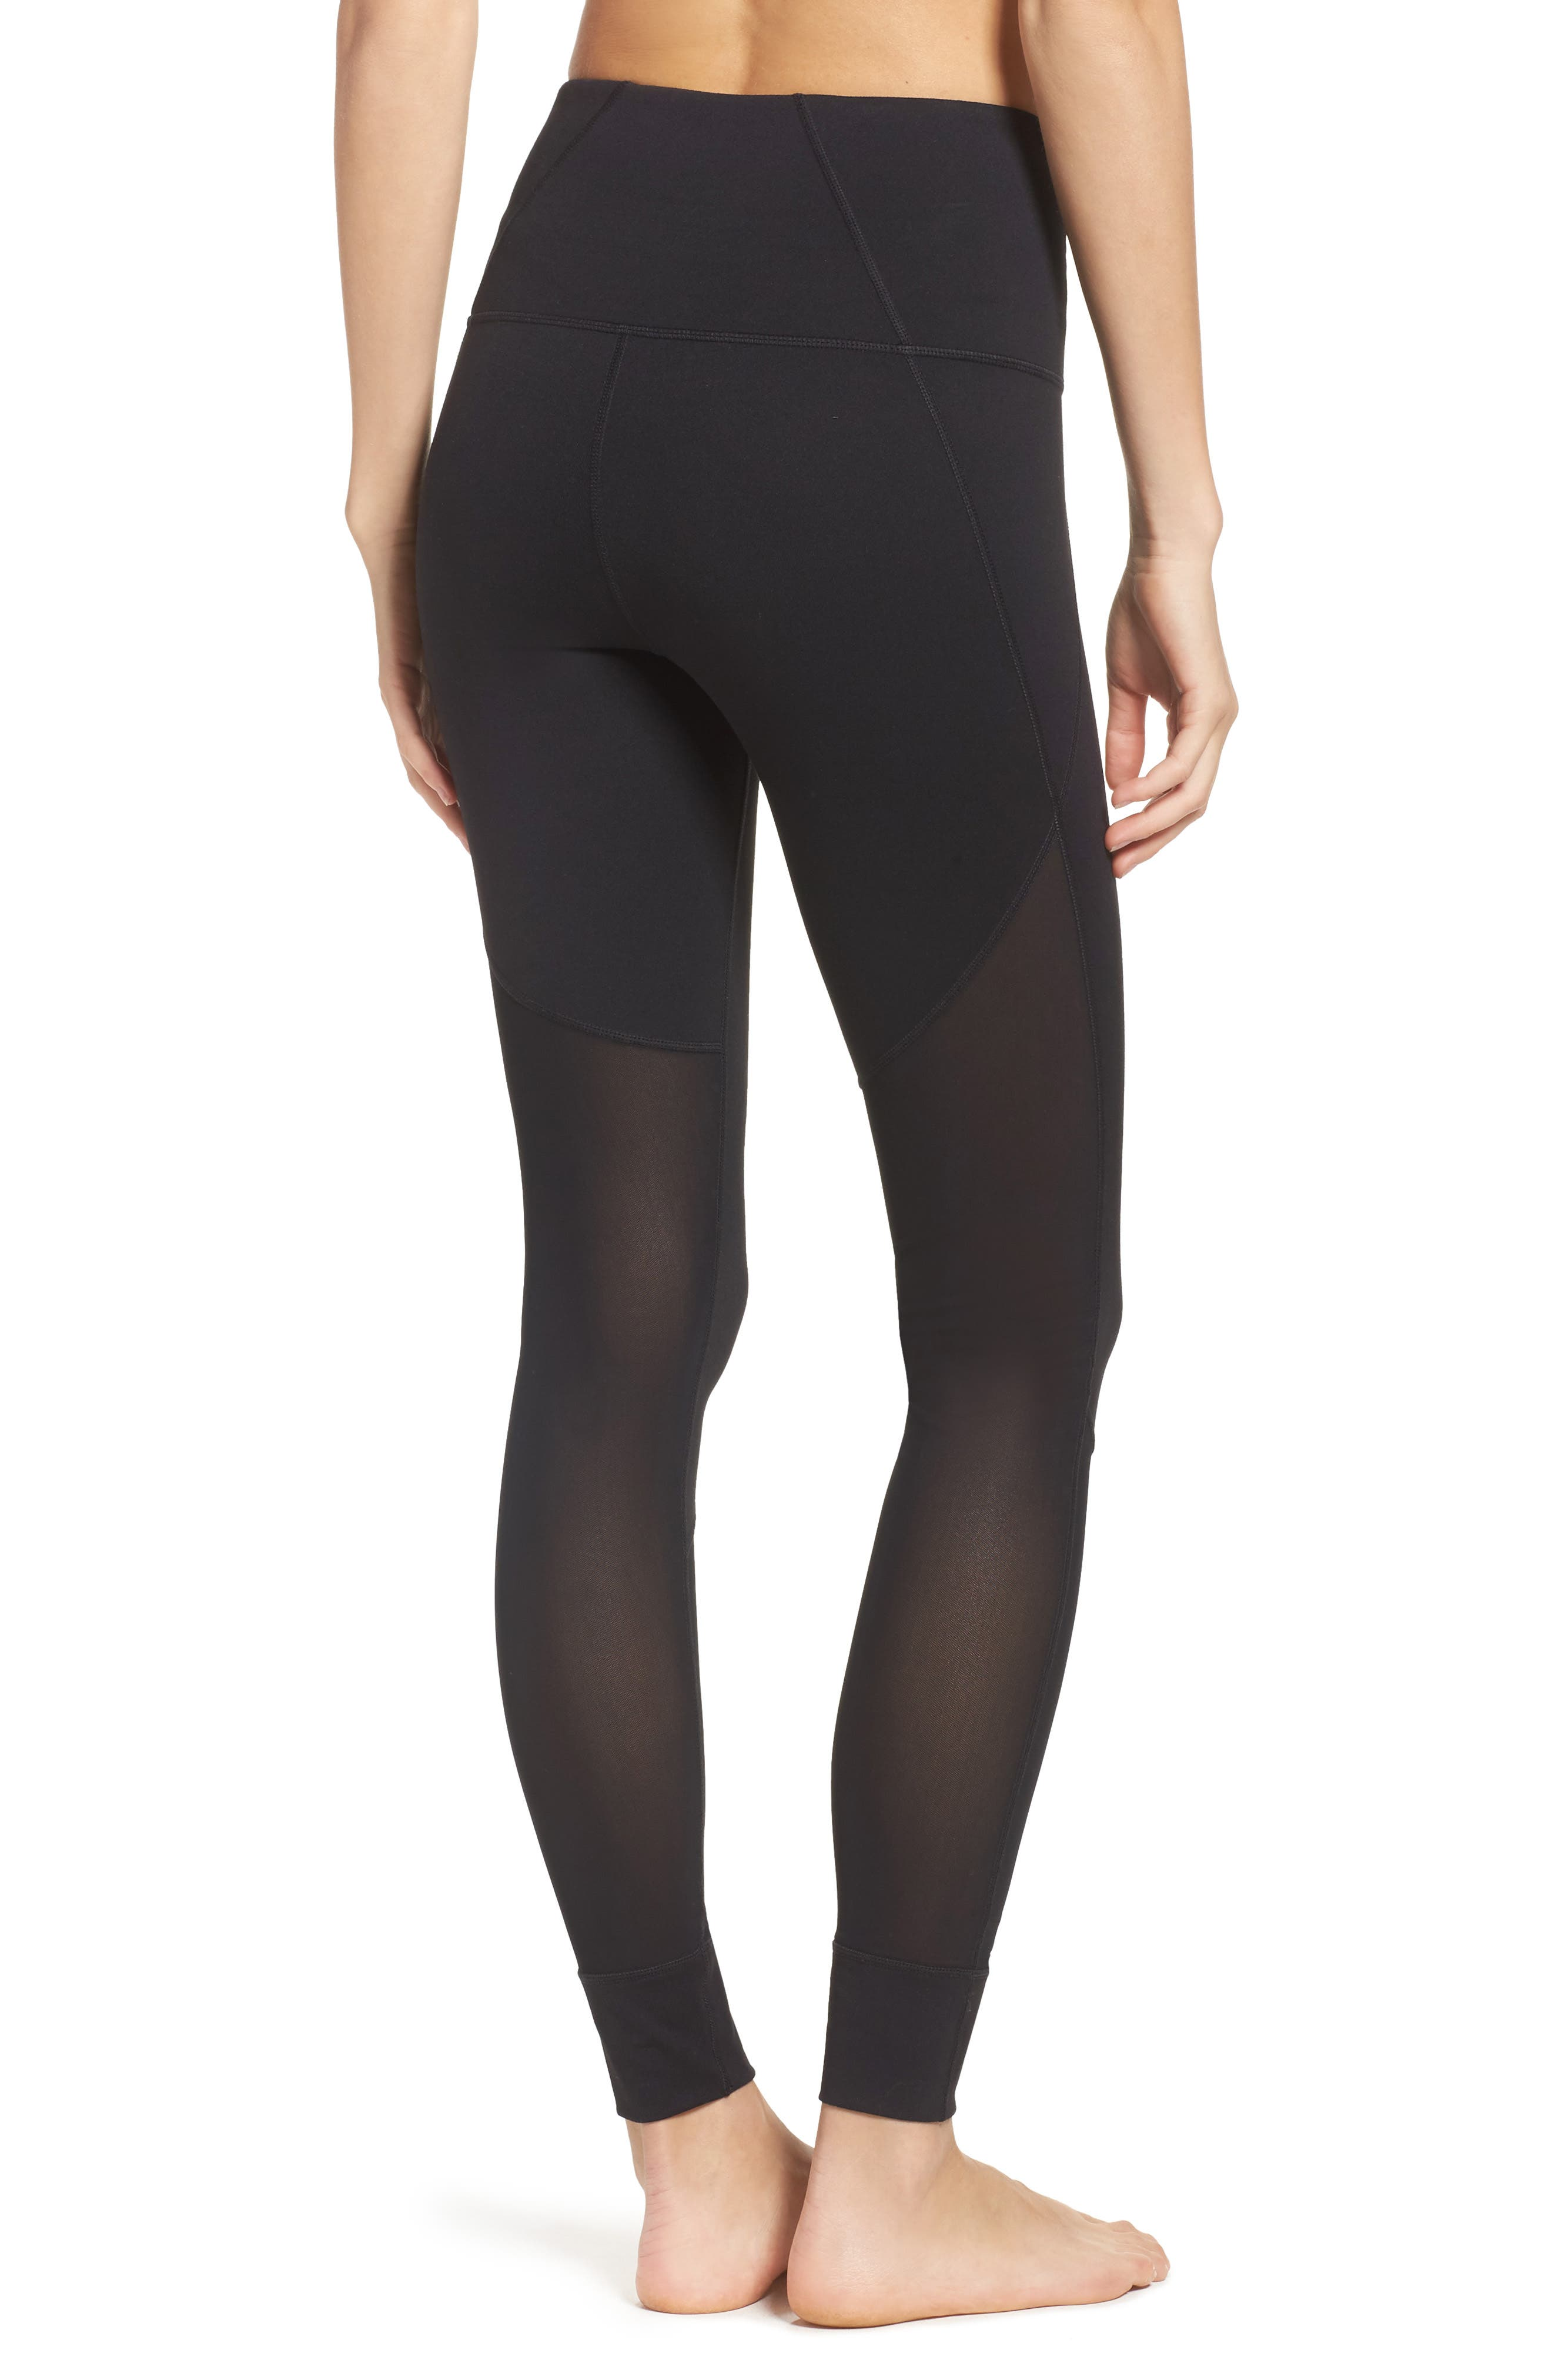 Zella Sultry High Waist Leggings